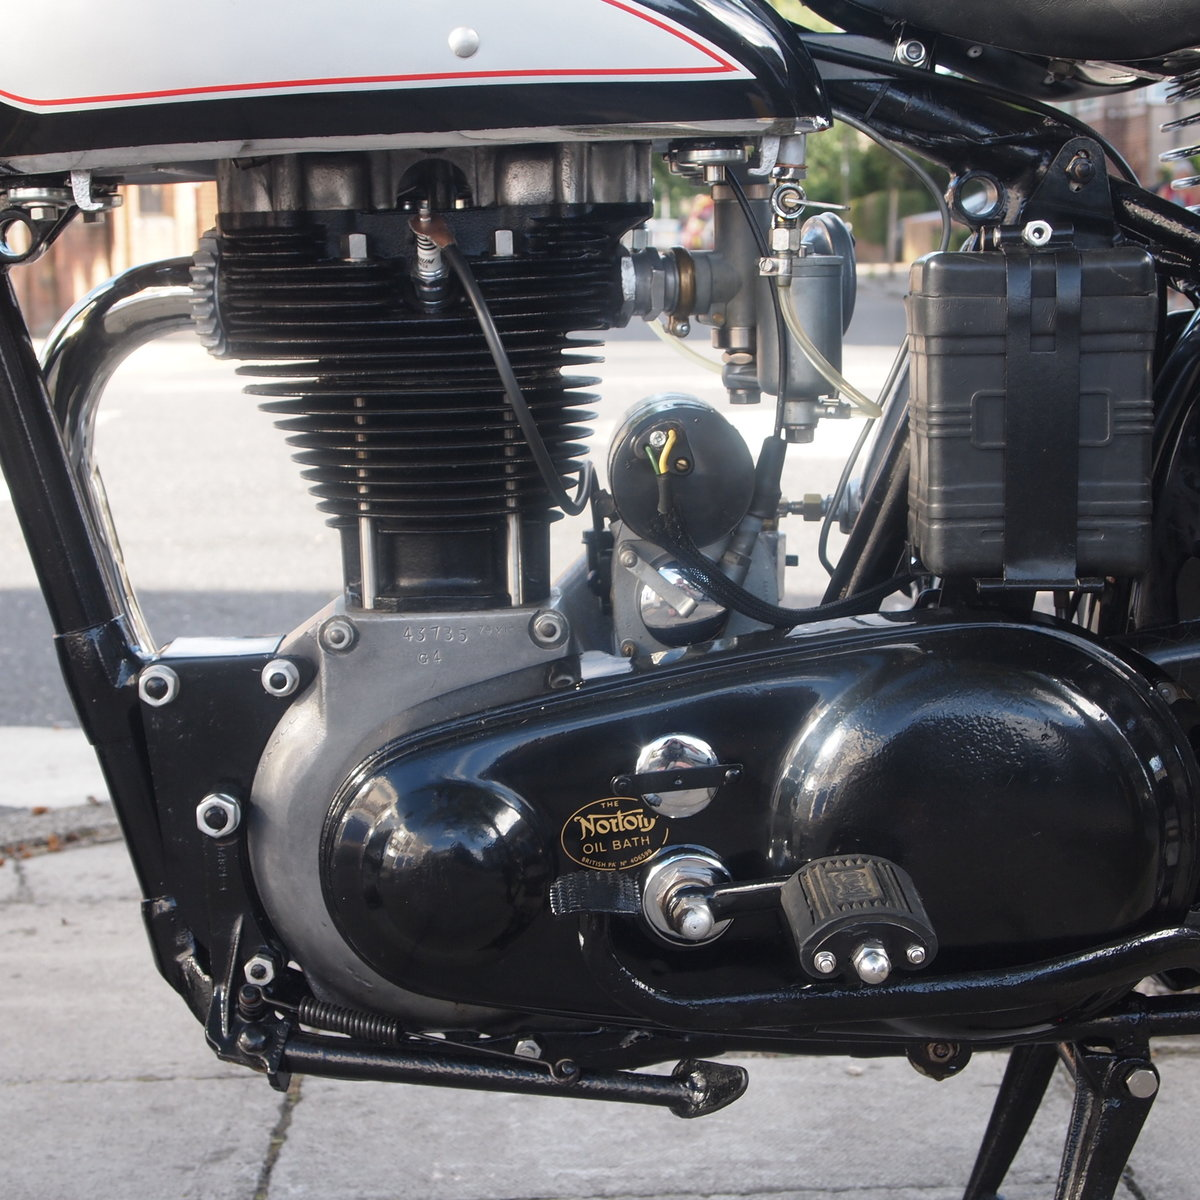 1952 Norton ES2 500 Brooklands Ltd Edition Cafe Racer, WoW. For Sale (picture 3 of 6)